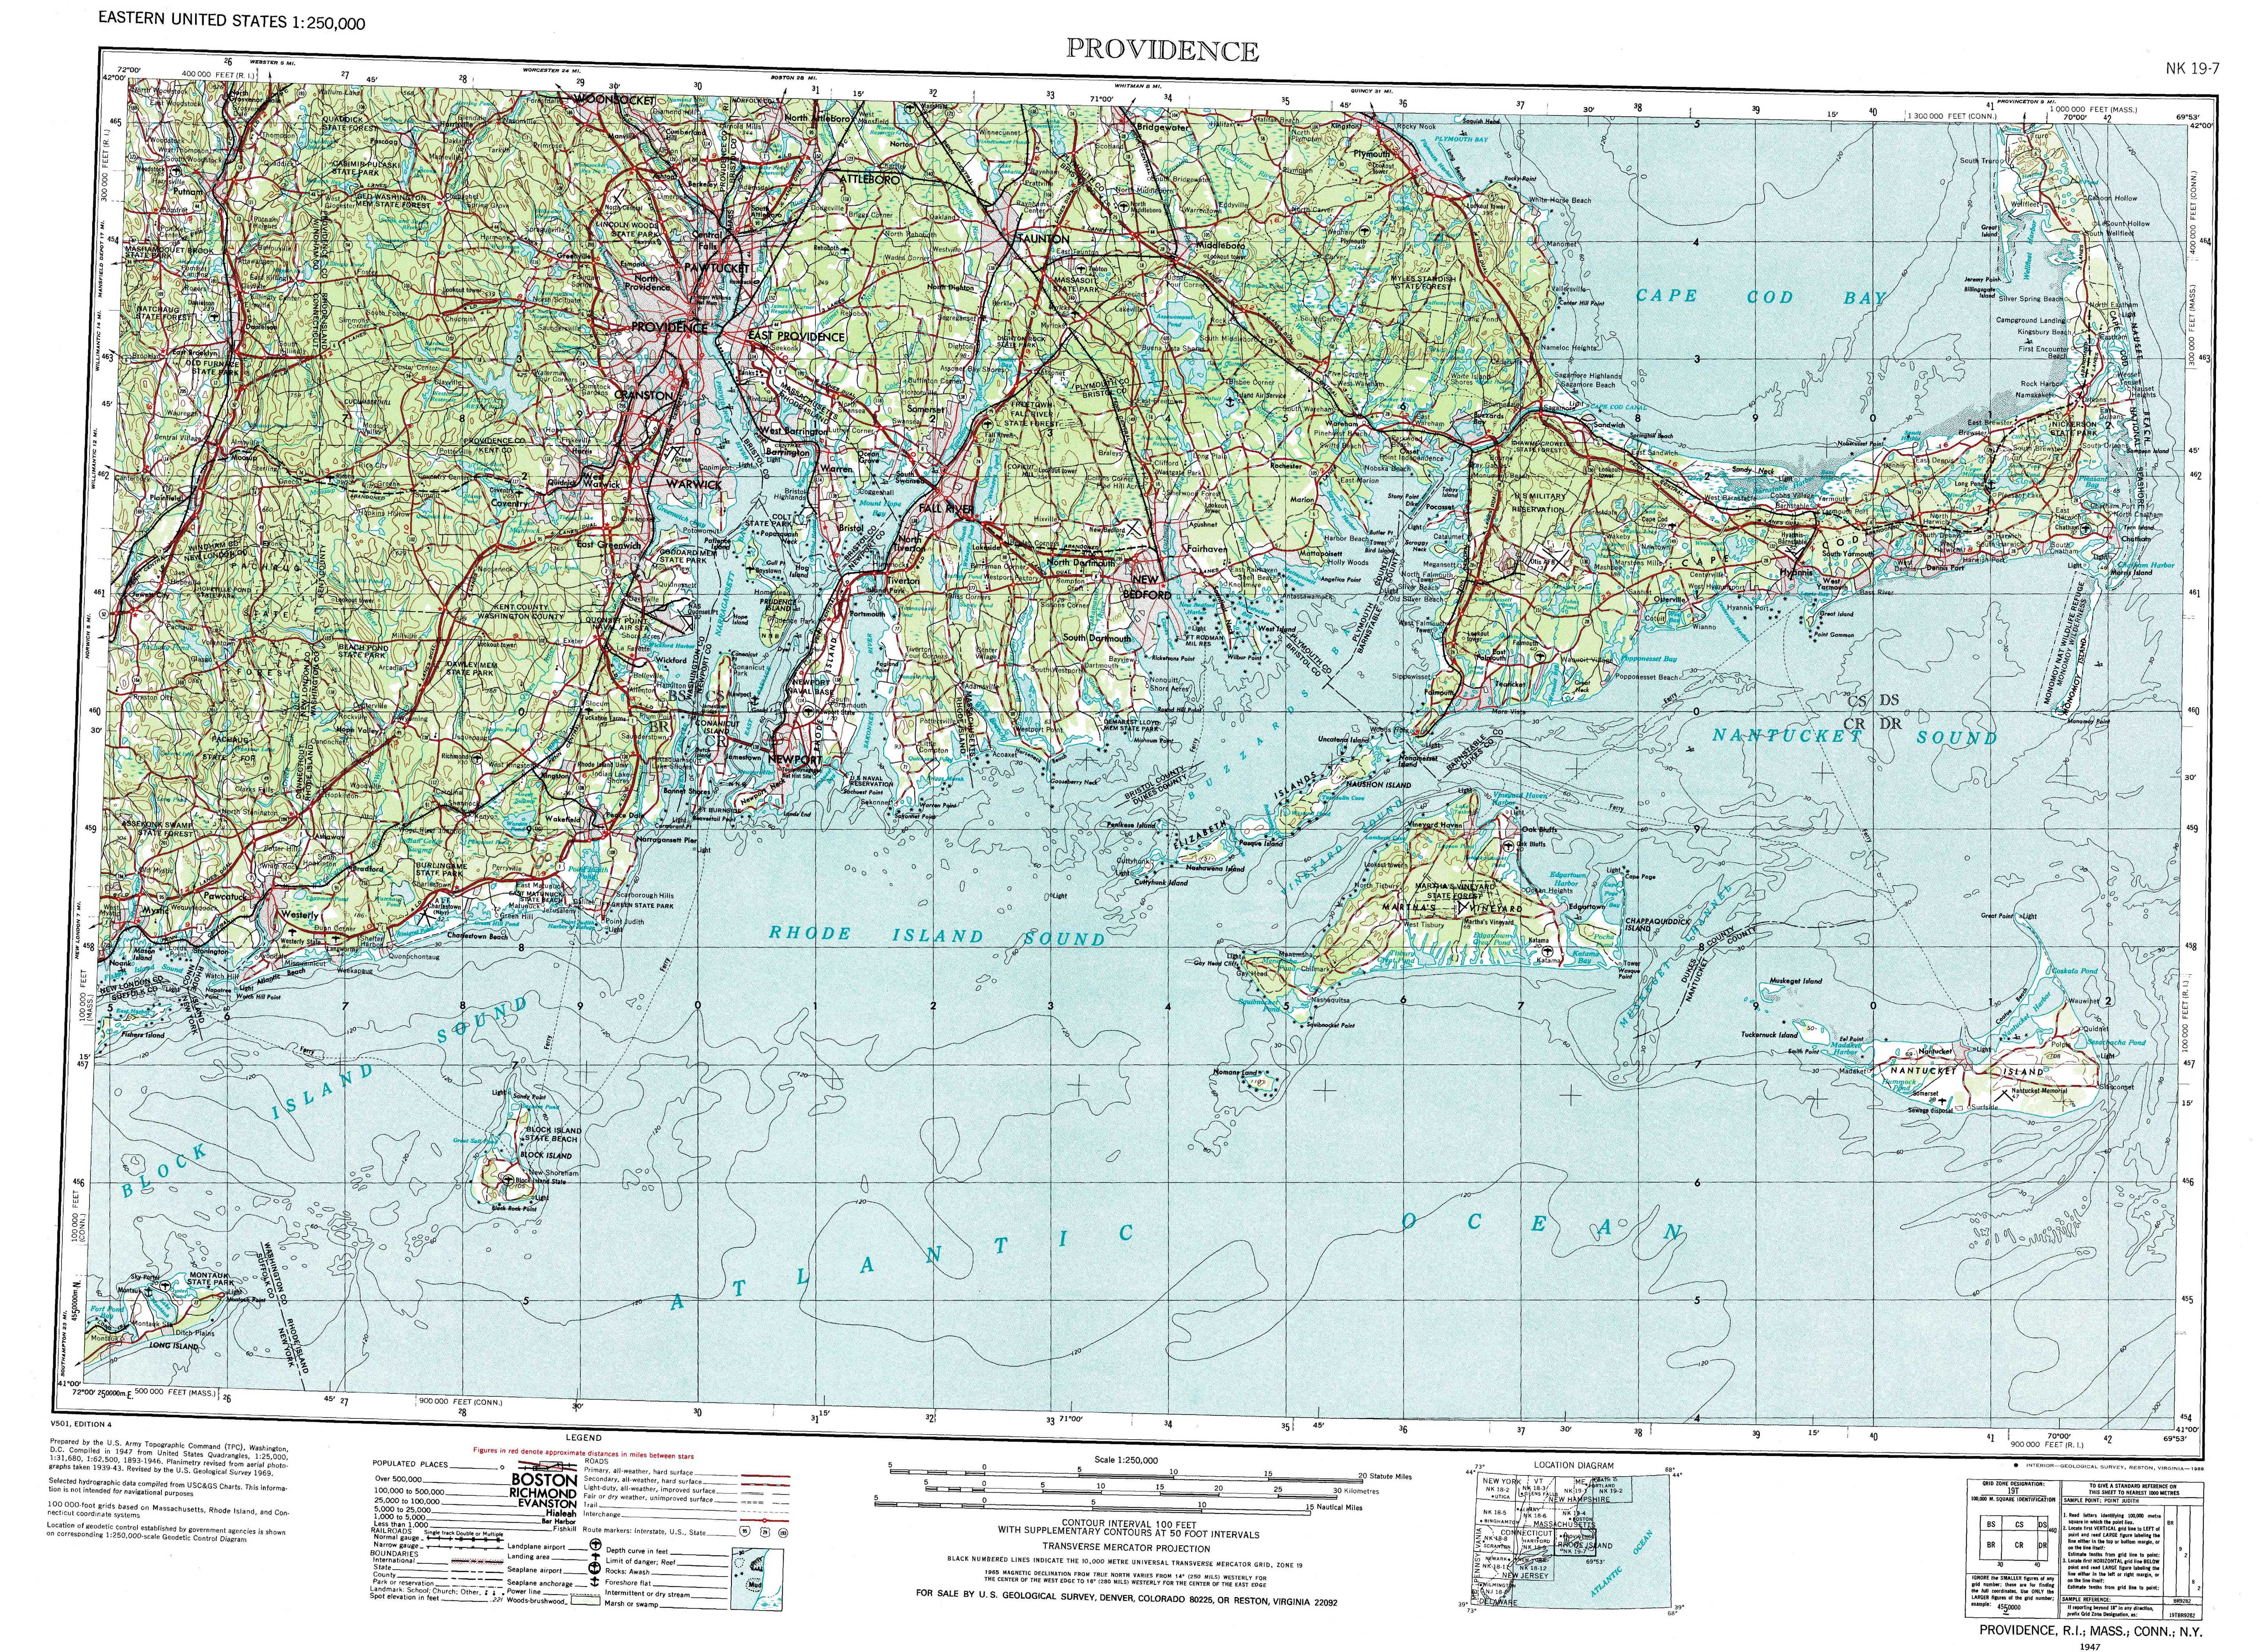 Acres For Sale In Oneida County New York NY LandQuest Freight - Topographic map of eastern us